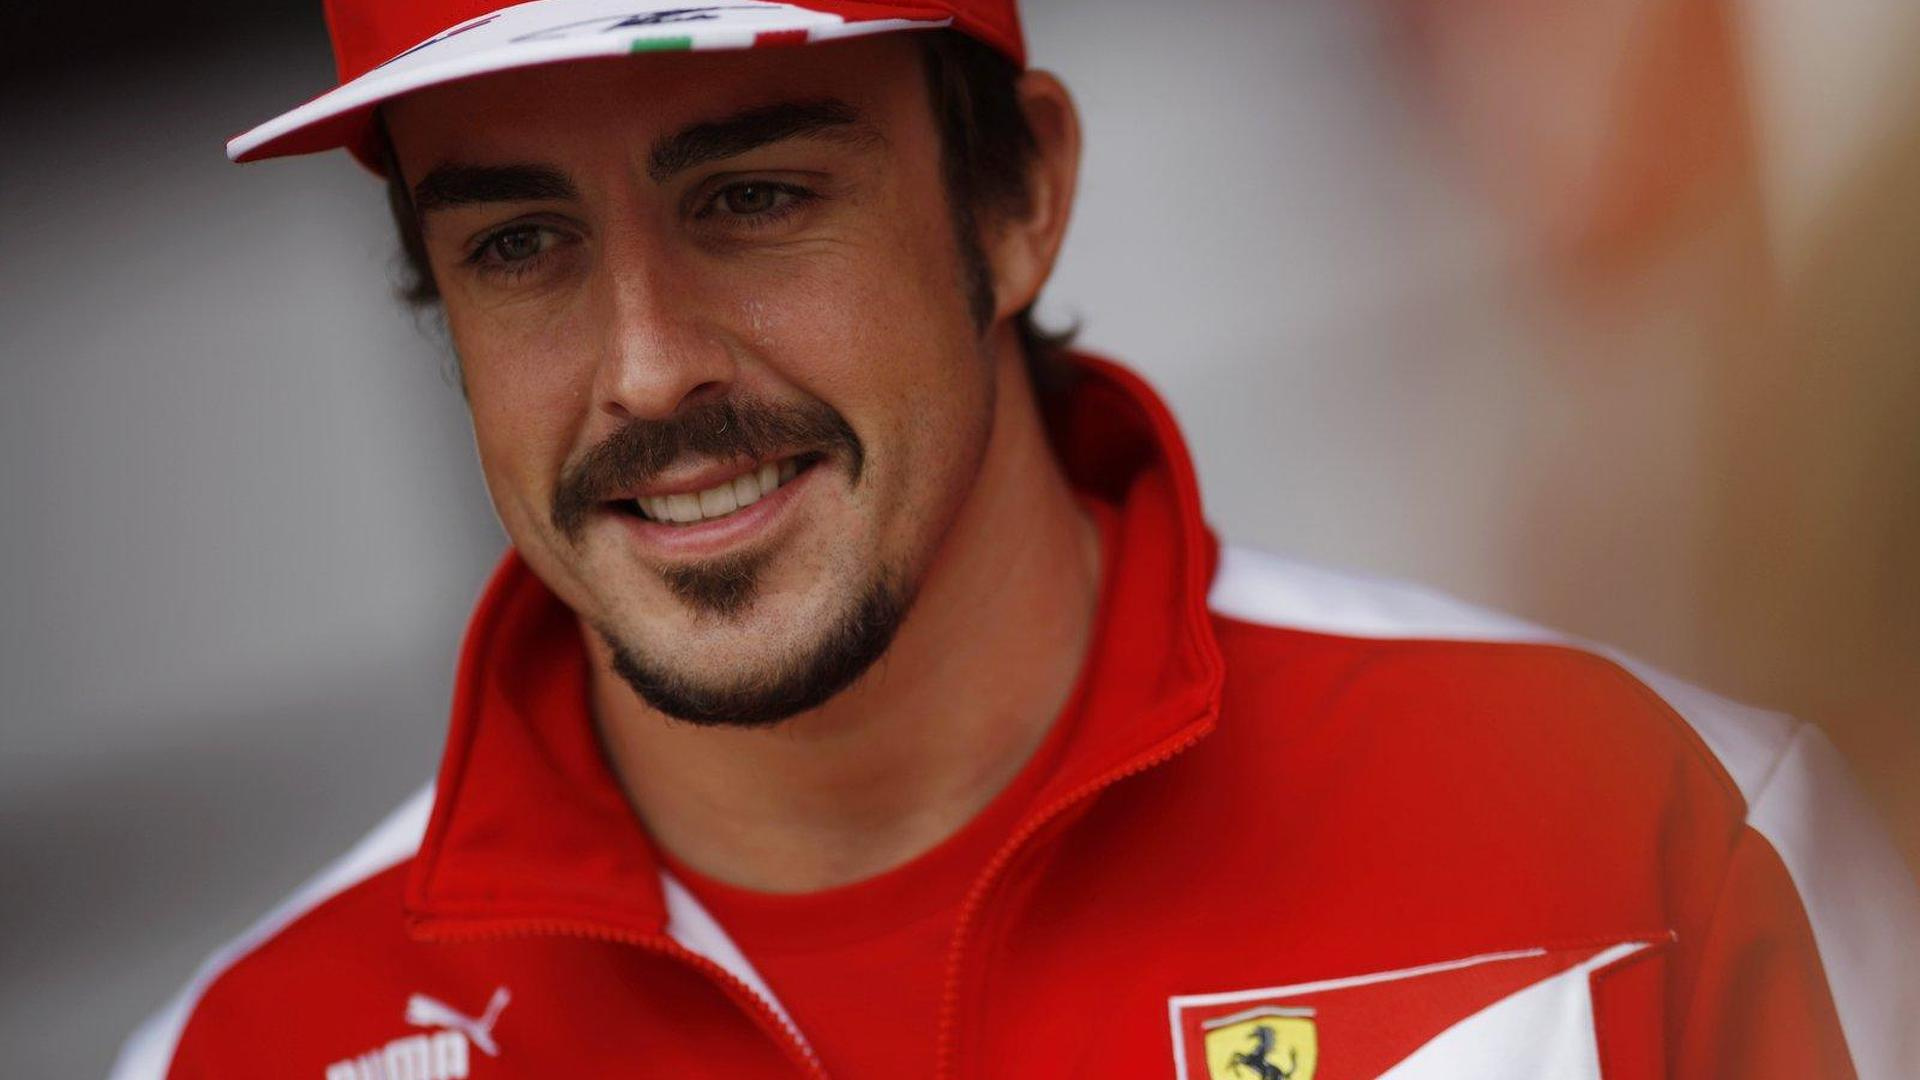 Alonso not complaining amid Pirelli tyre shakeup